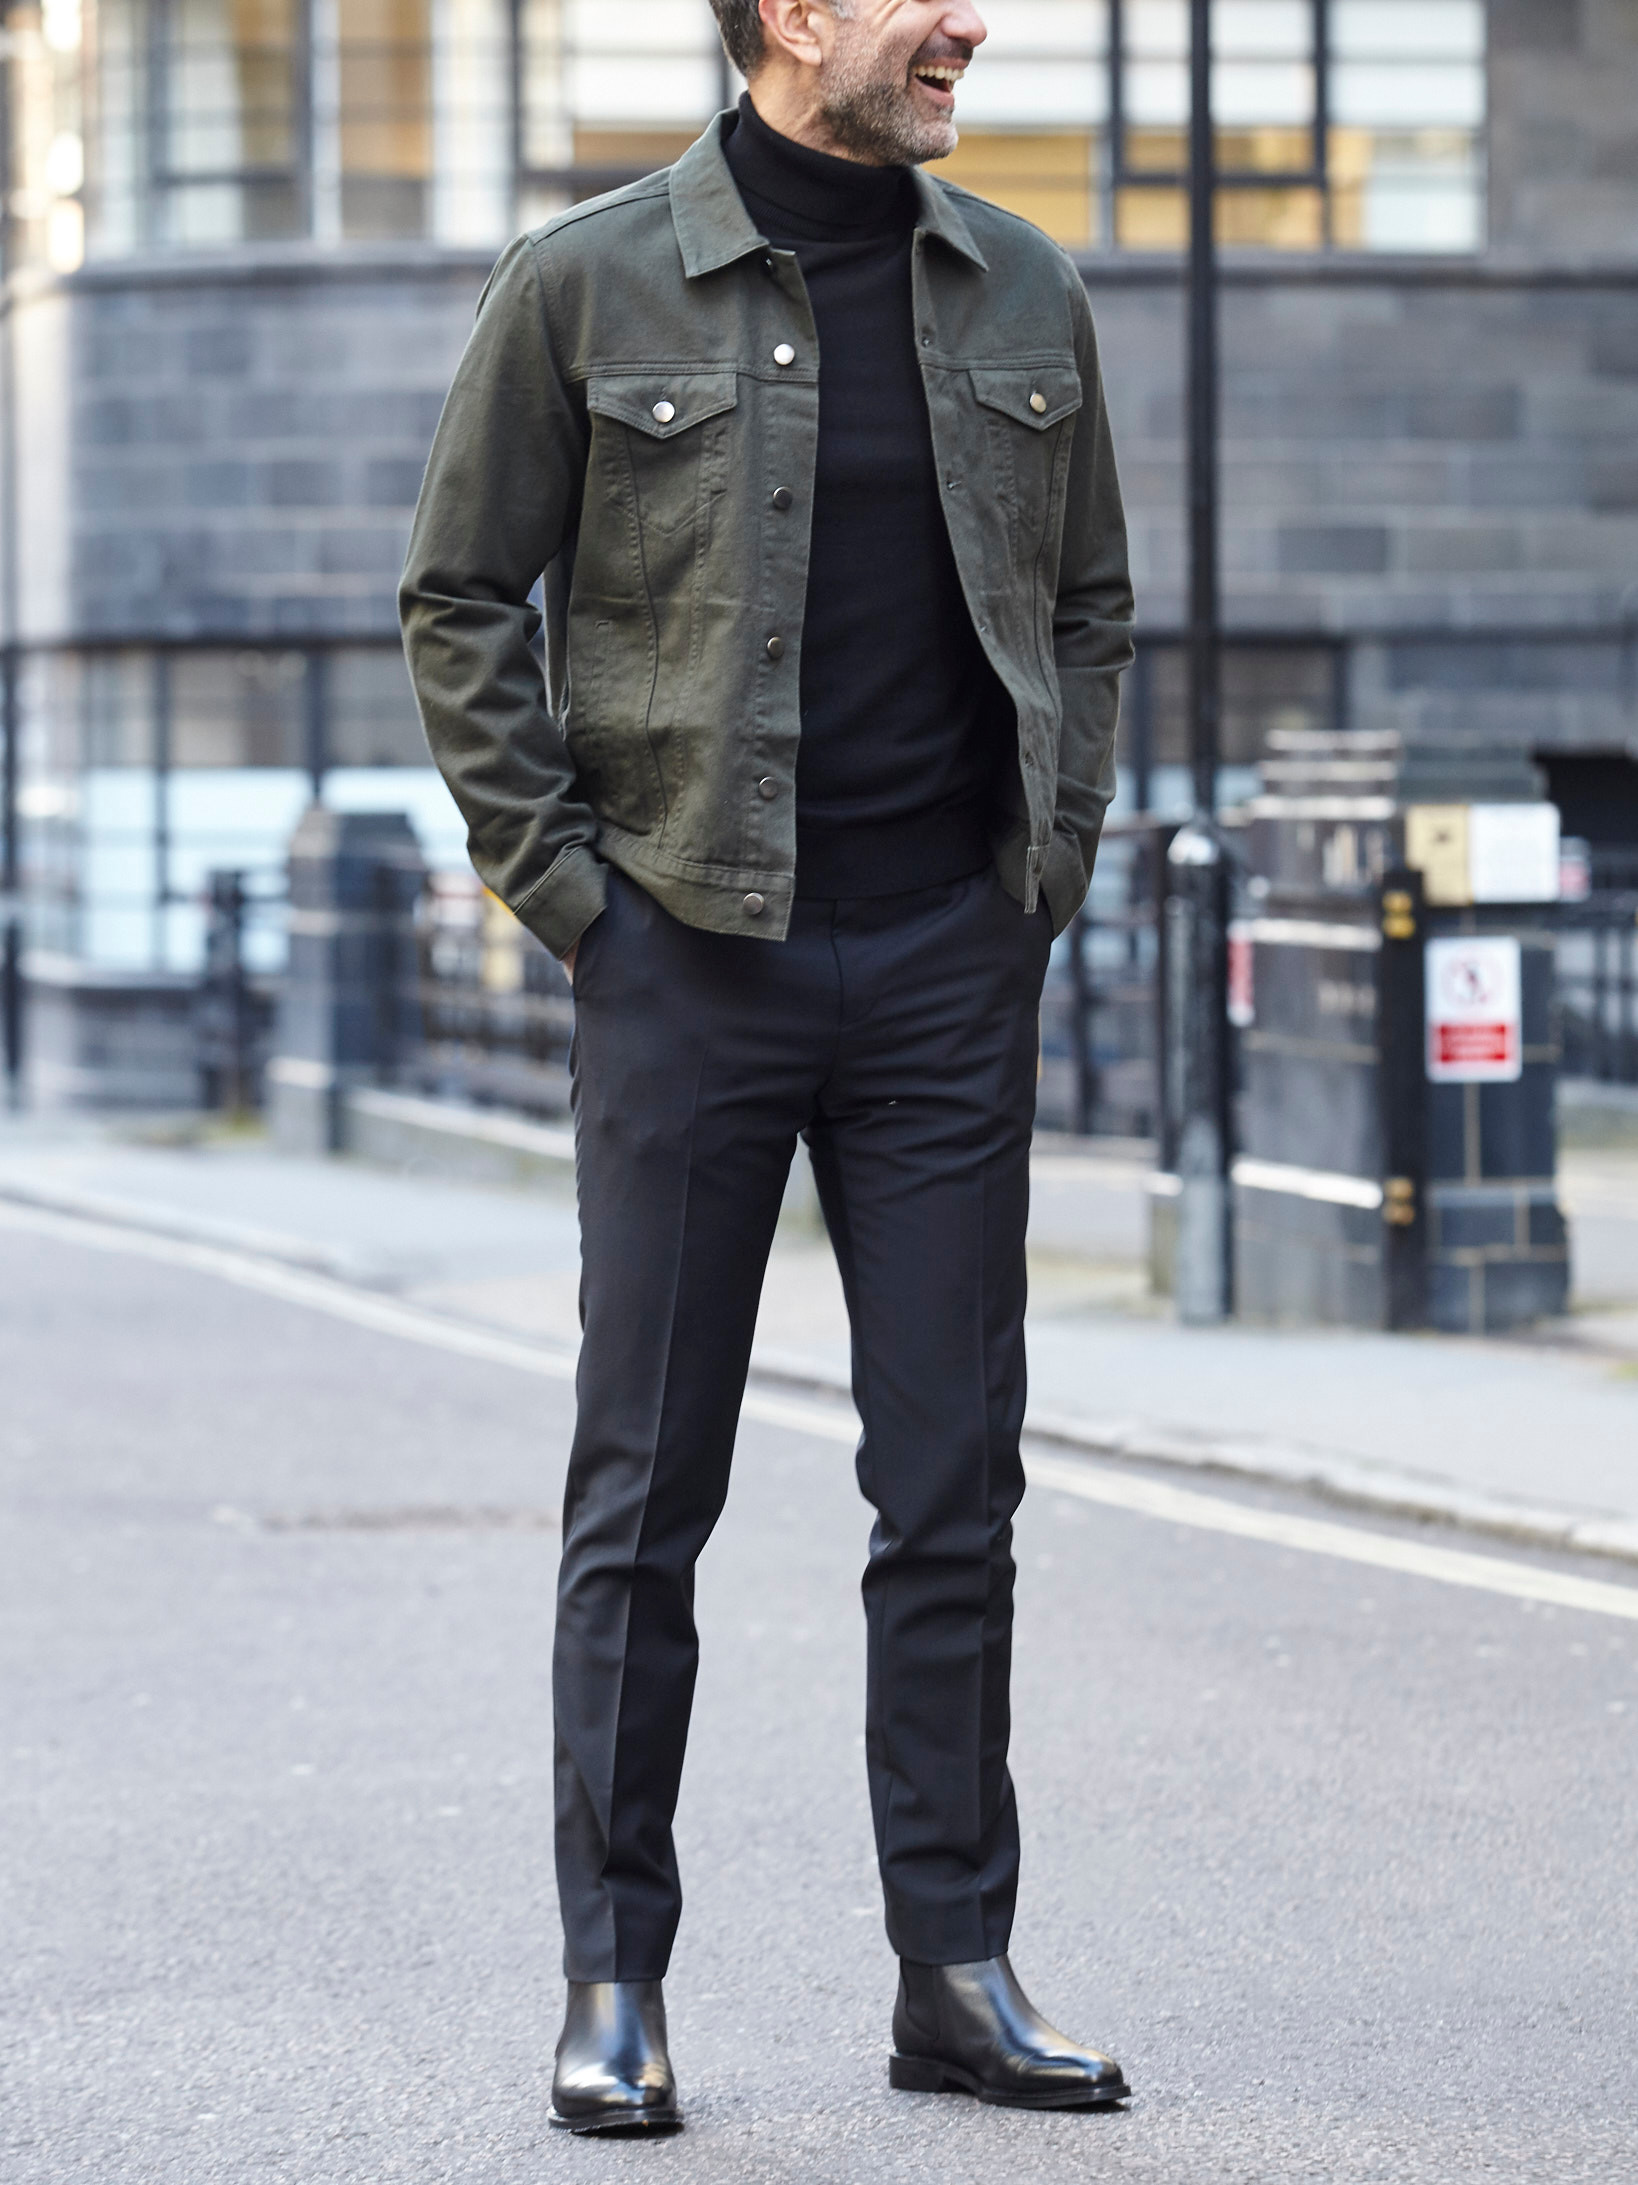 Men's outfit idea for 2021 with green jacket, lightweight rollneck jumper, black formal trousers, black chelsea boots. Suitable for spring and autumn.